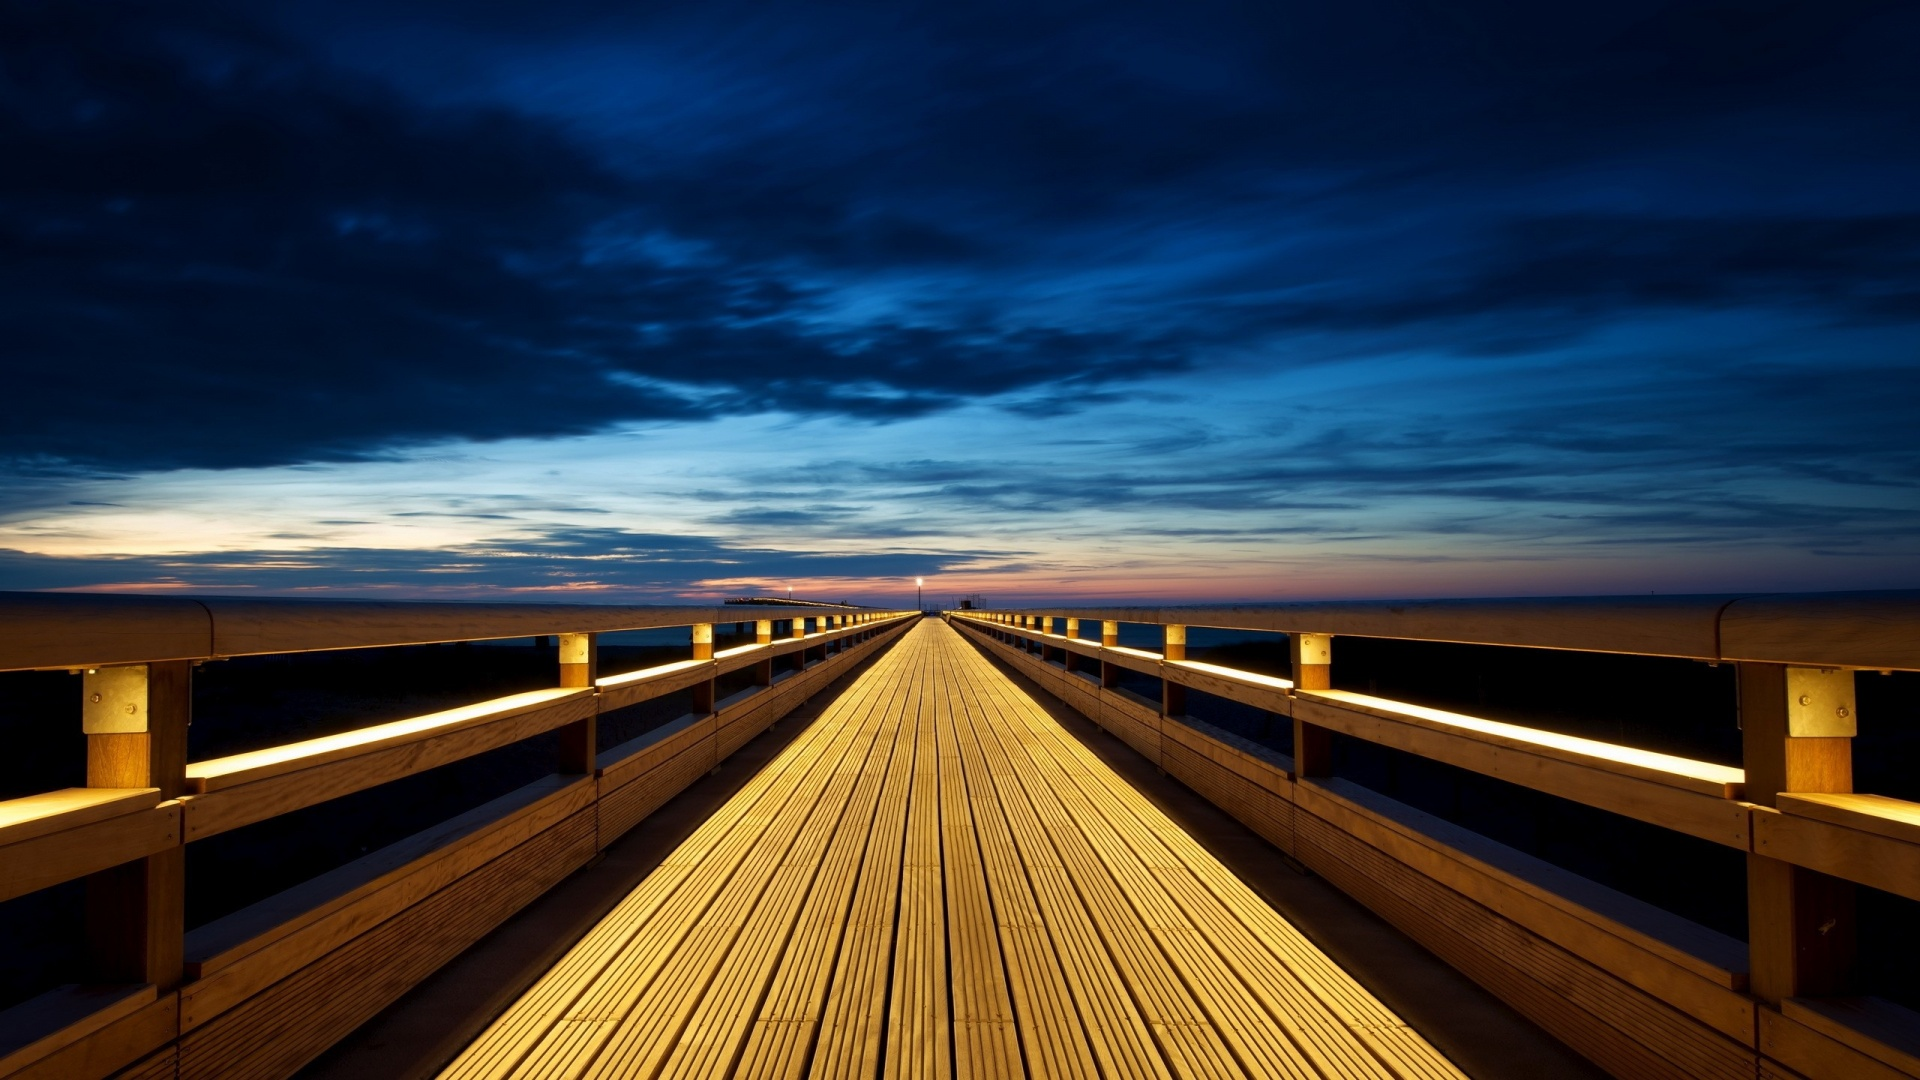 Endless Wooden Bridge